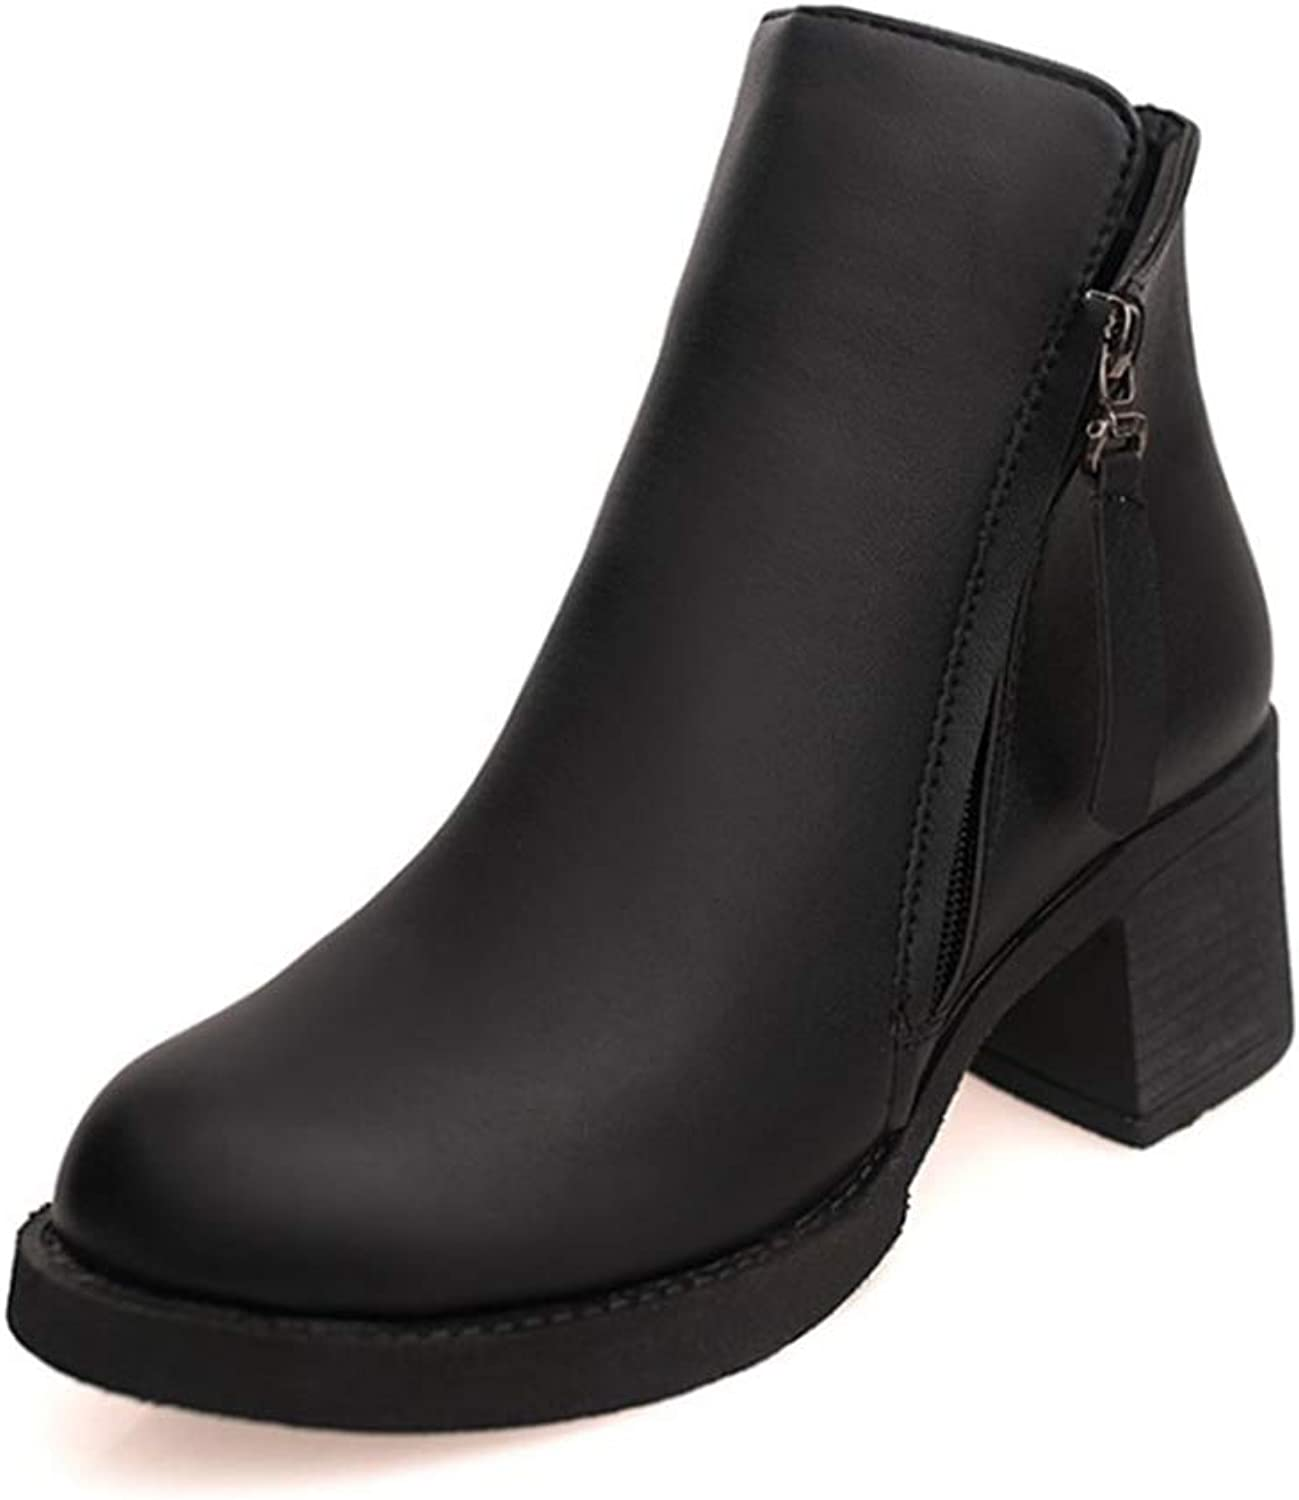 T-JULY Ankle Boots for Women Leather shoes Wedges Black Red Fashion shoes Leather Boots Botines